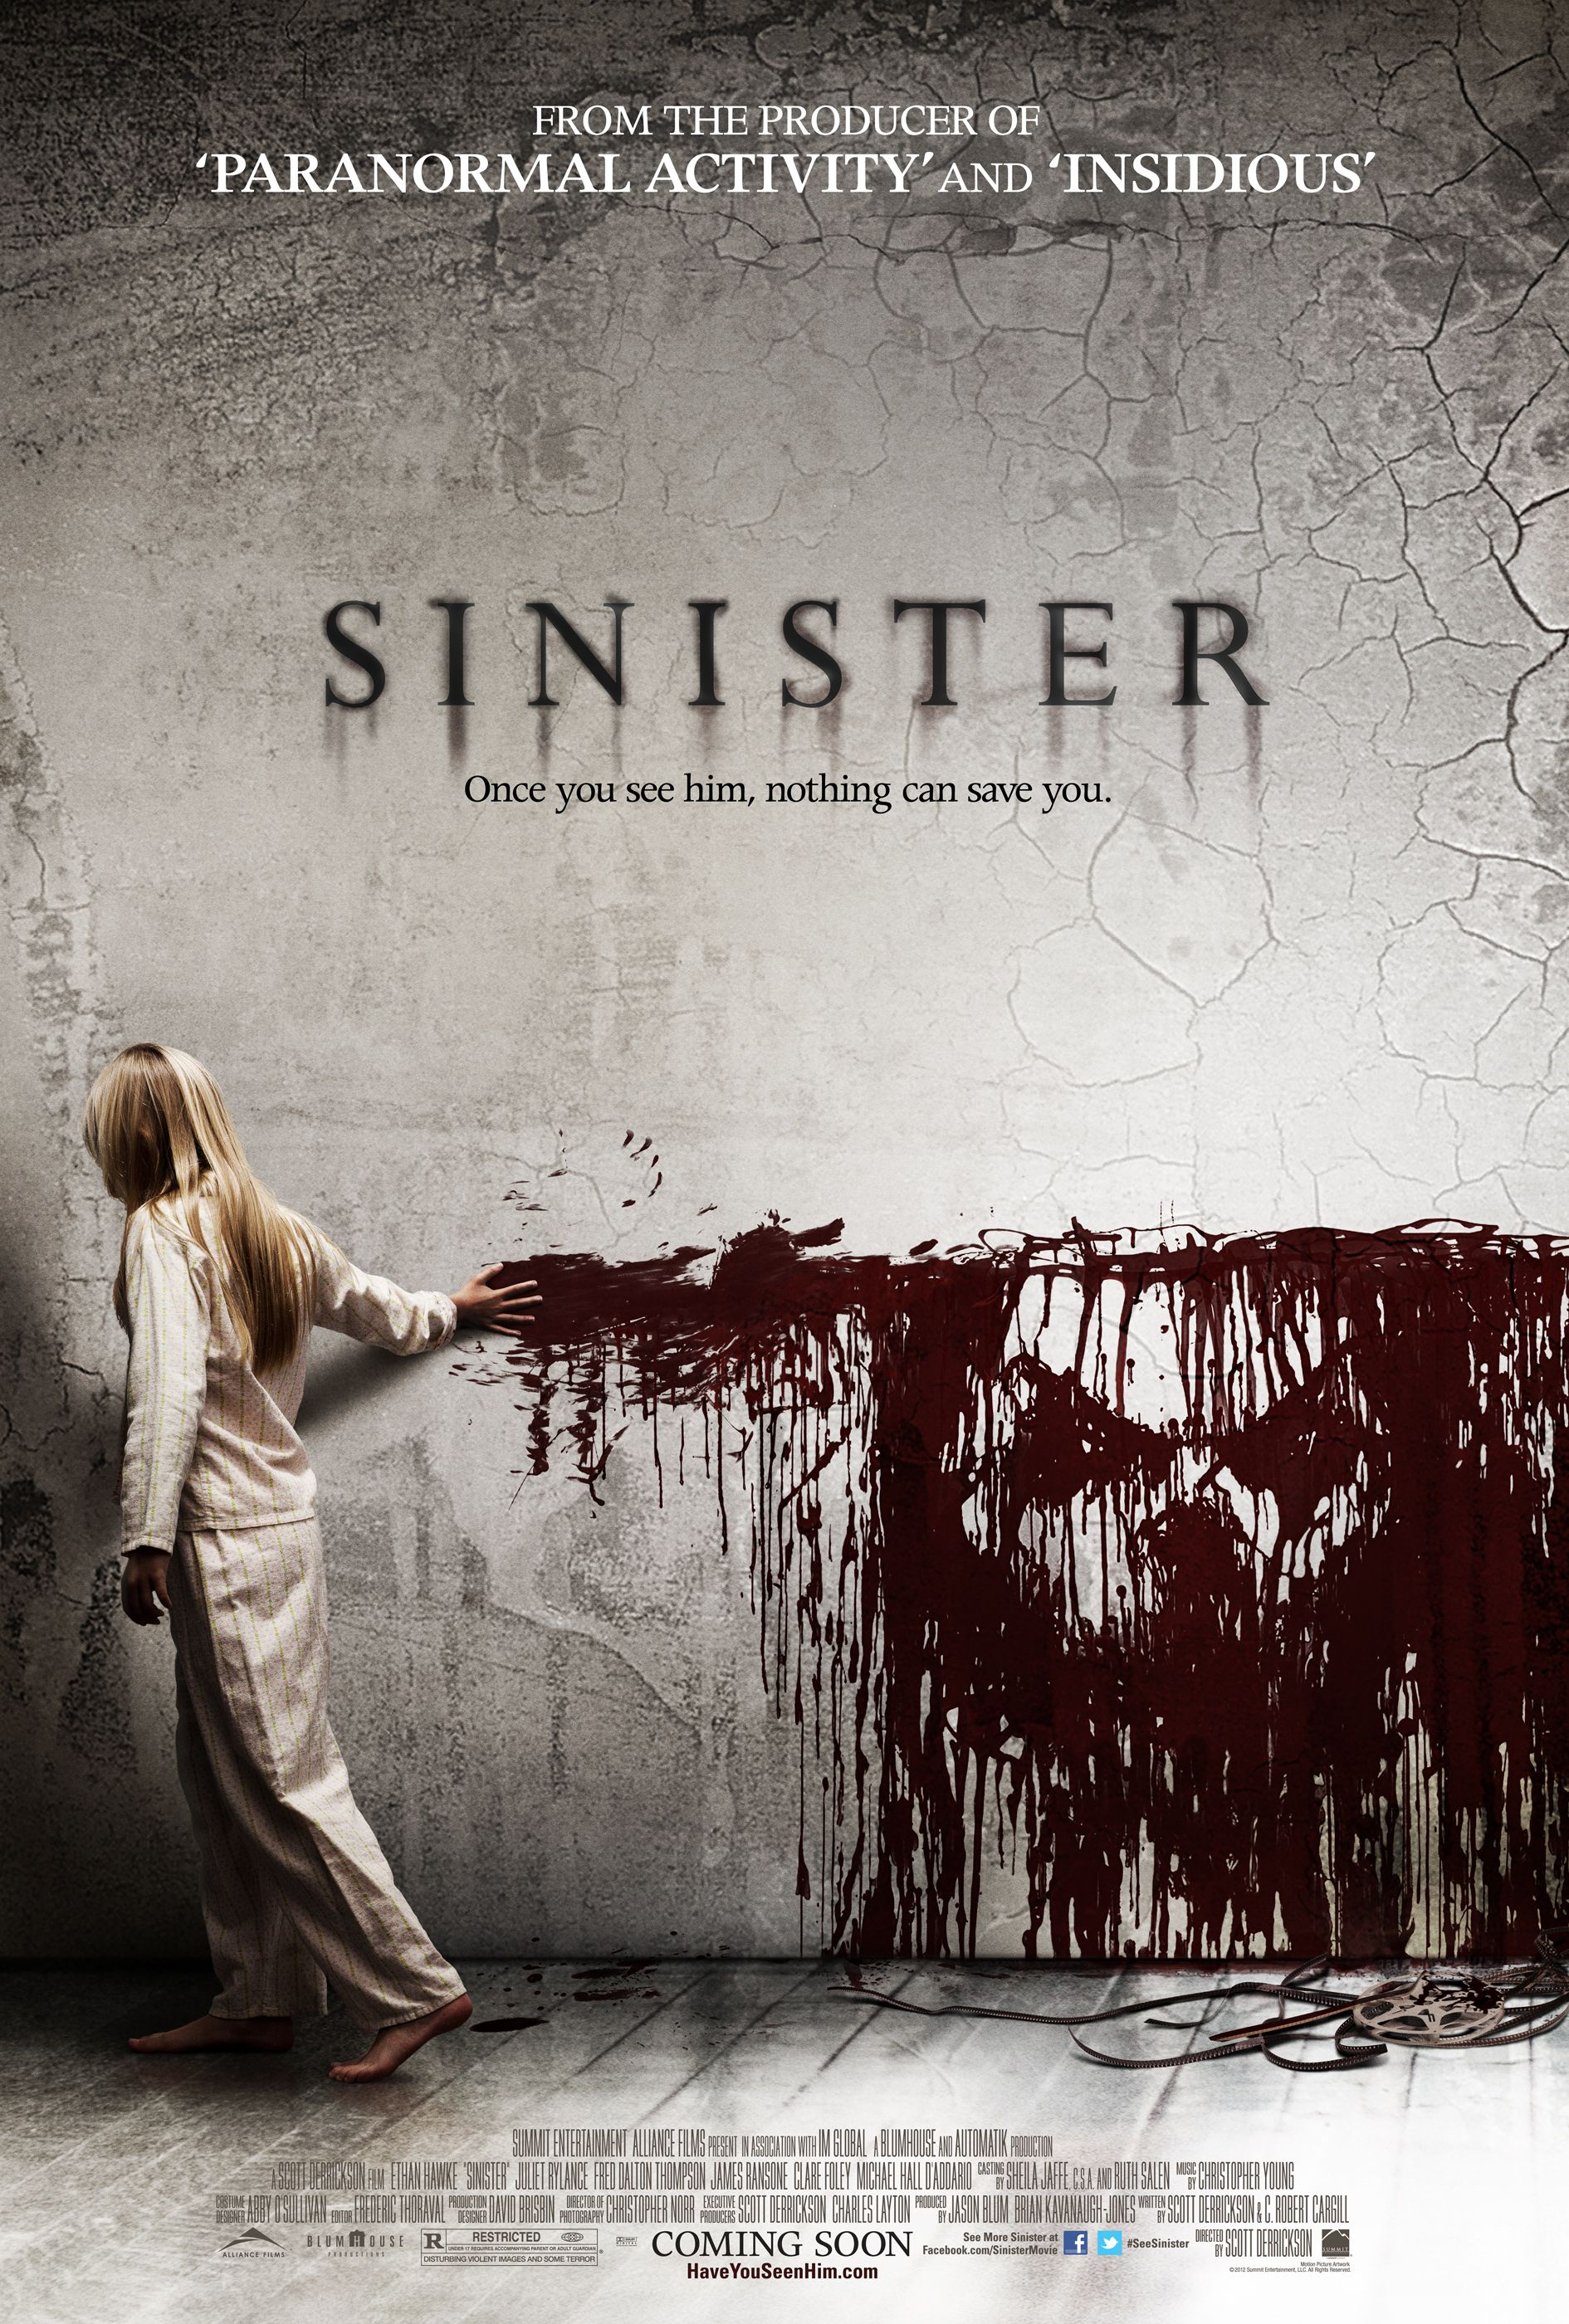 Sinister 2012 Movie Trailer Photo Poster Ethan Hawke Met